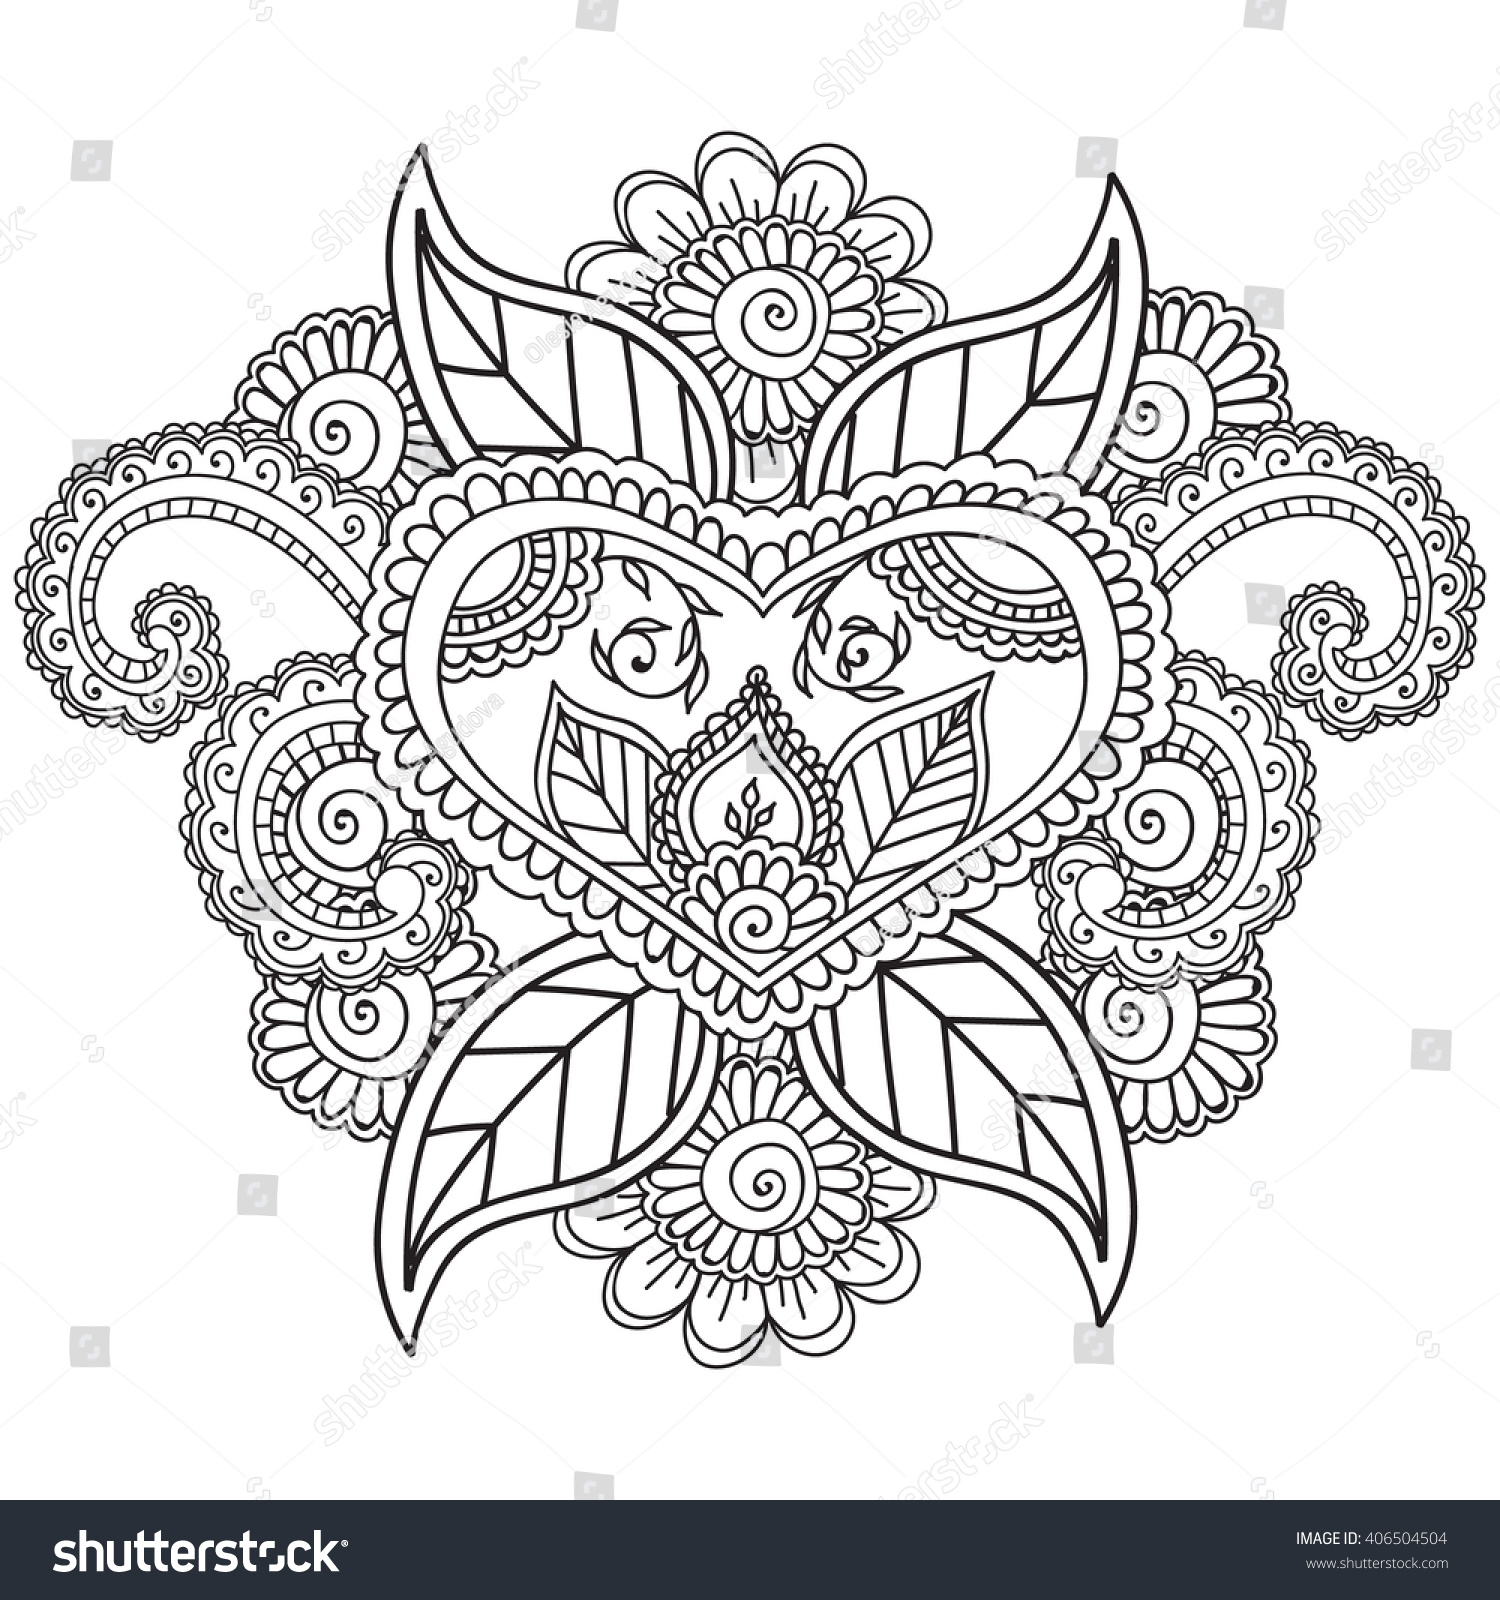 Coloring pages adults henna mehndi doodleszentahgle stock for Henna coloring pages